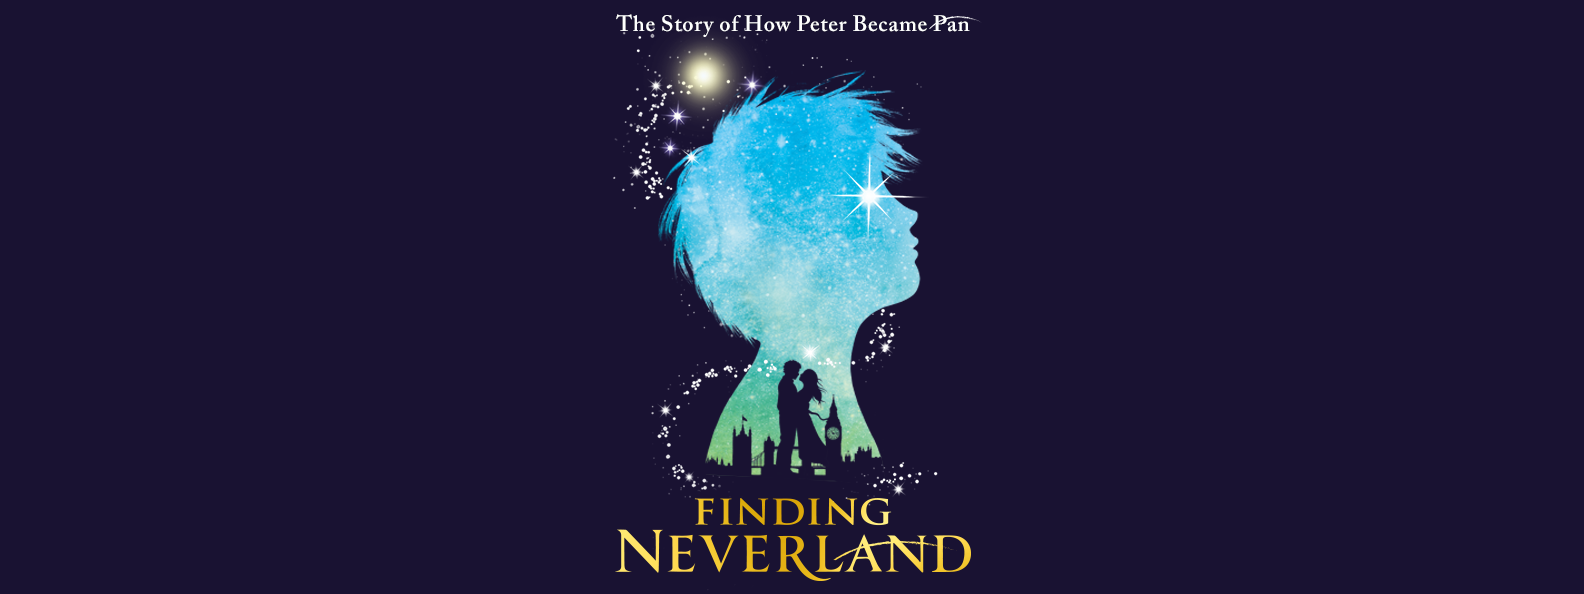 Finding Neverland Hershey